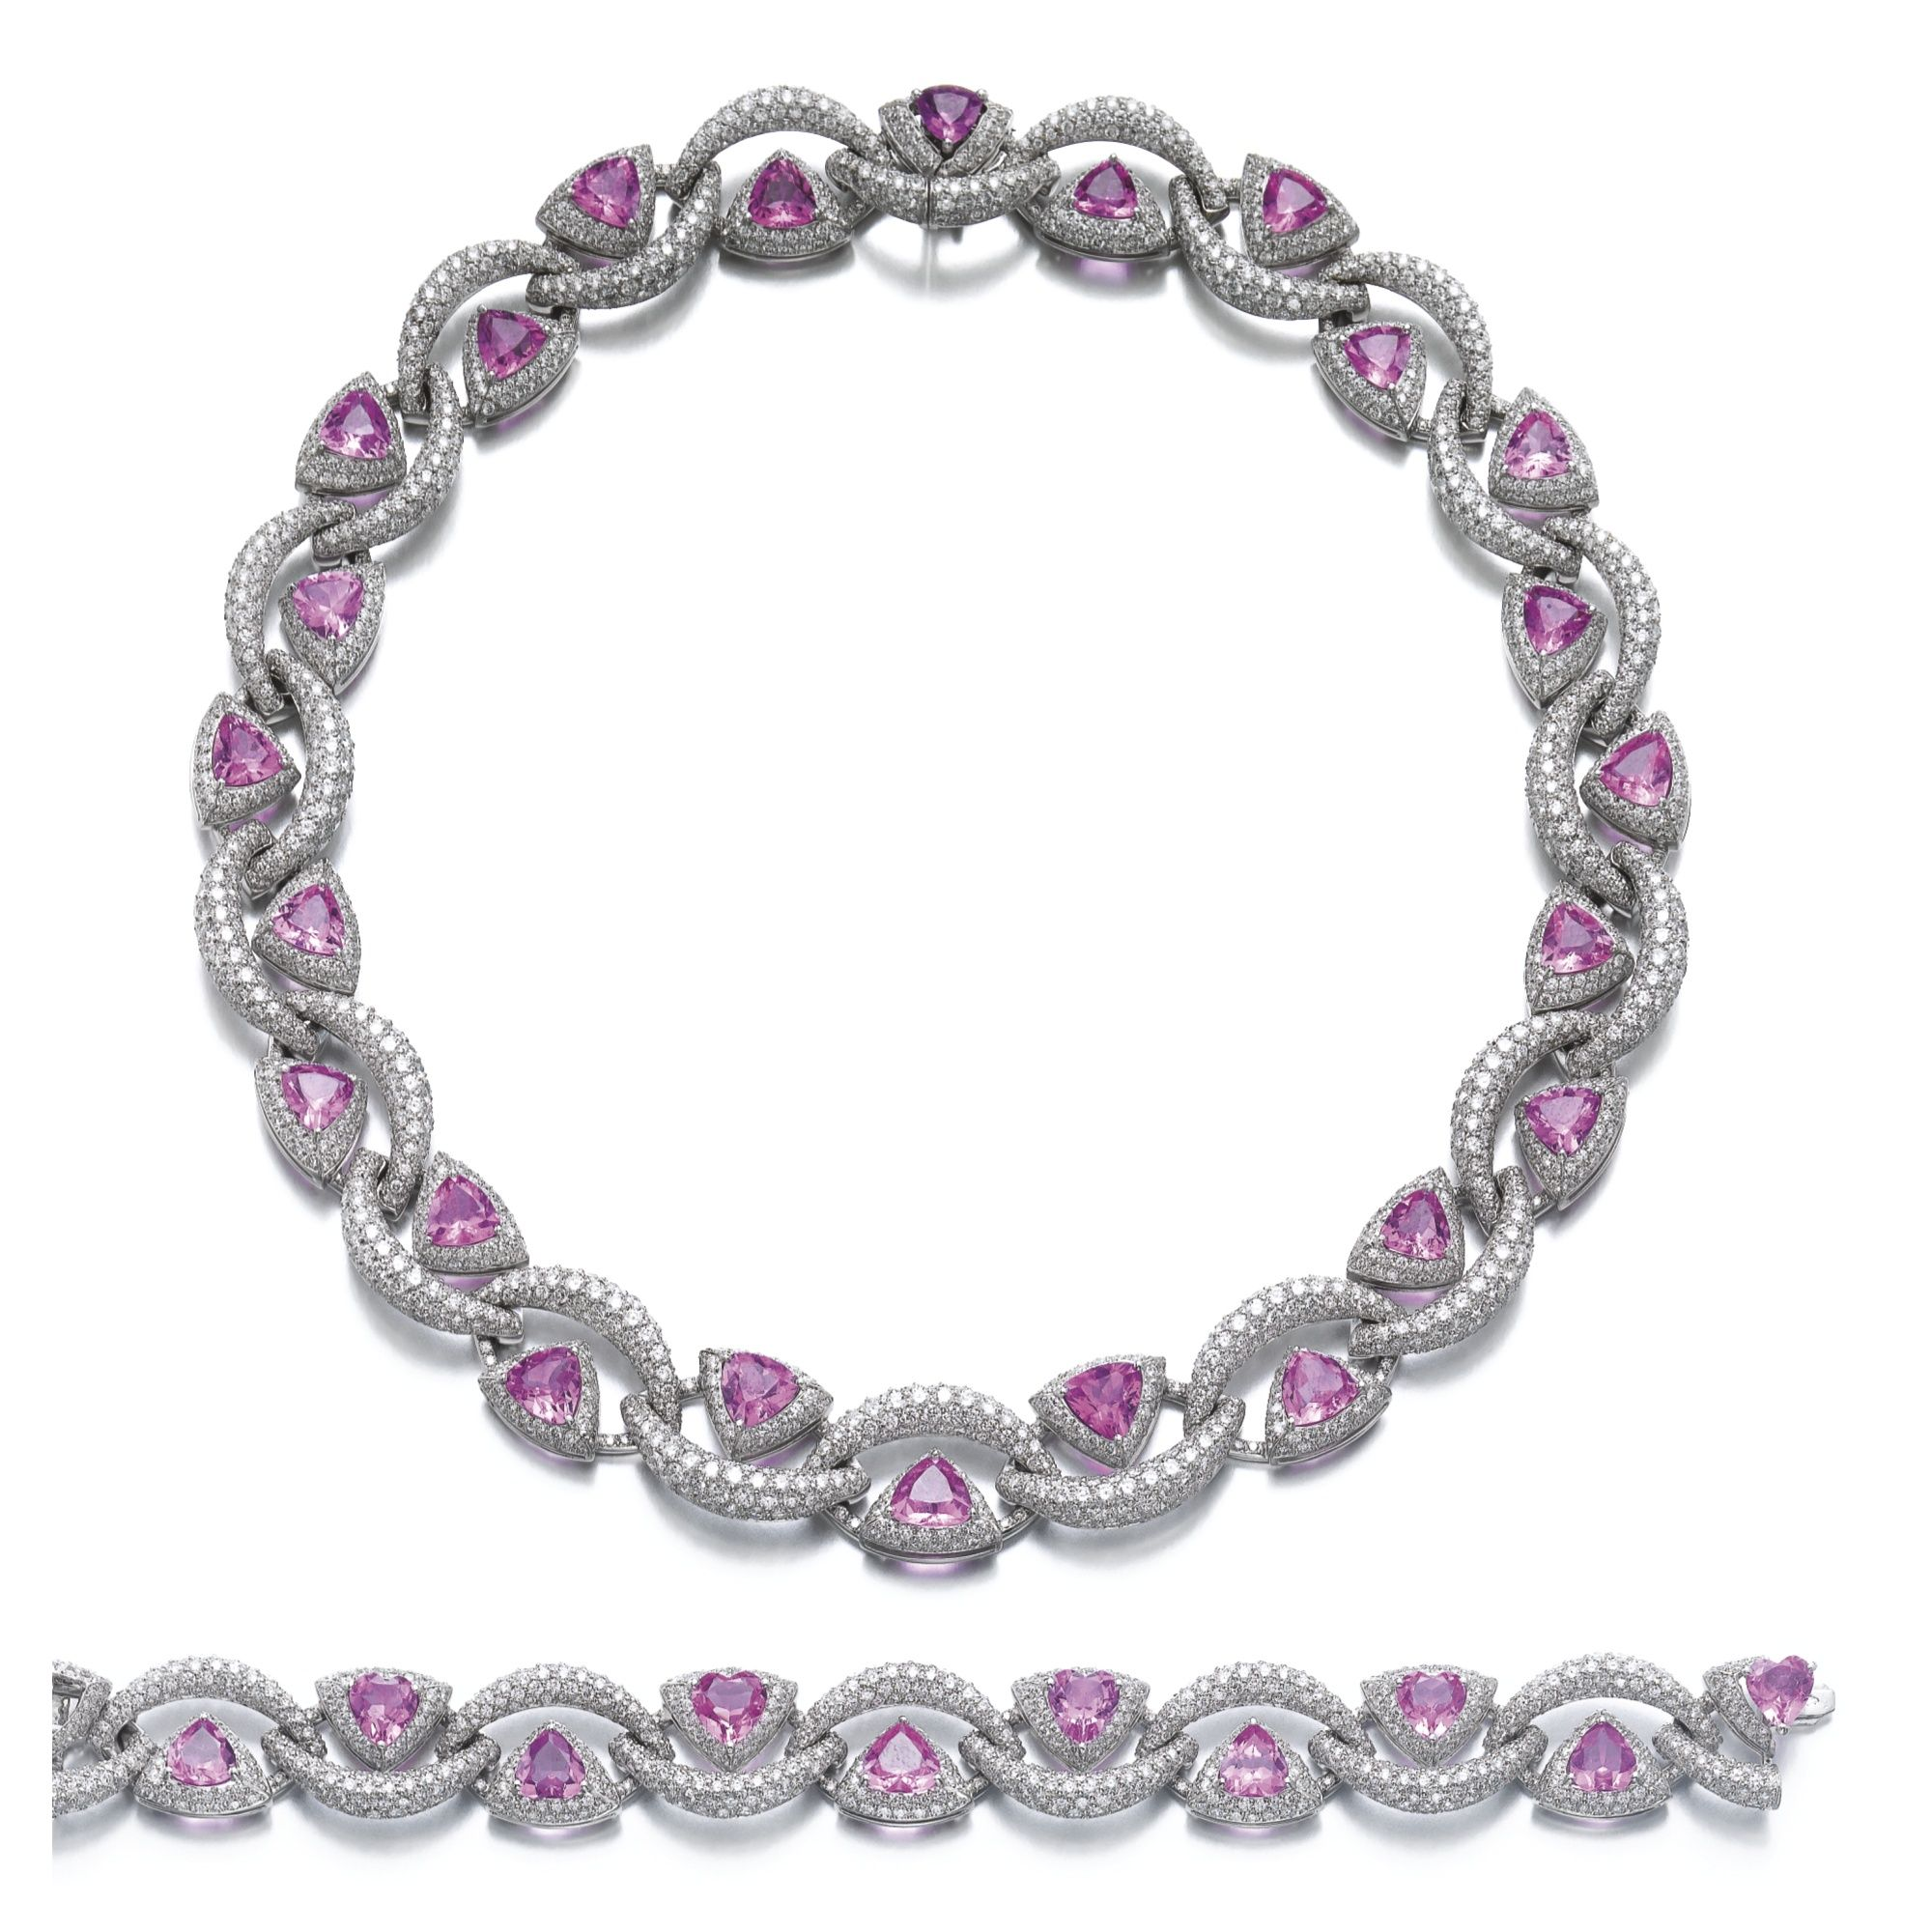 web oval bracelet nsc white sapphire ct certification pink gold